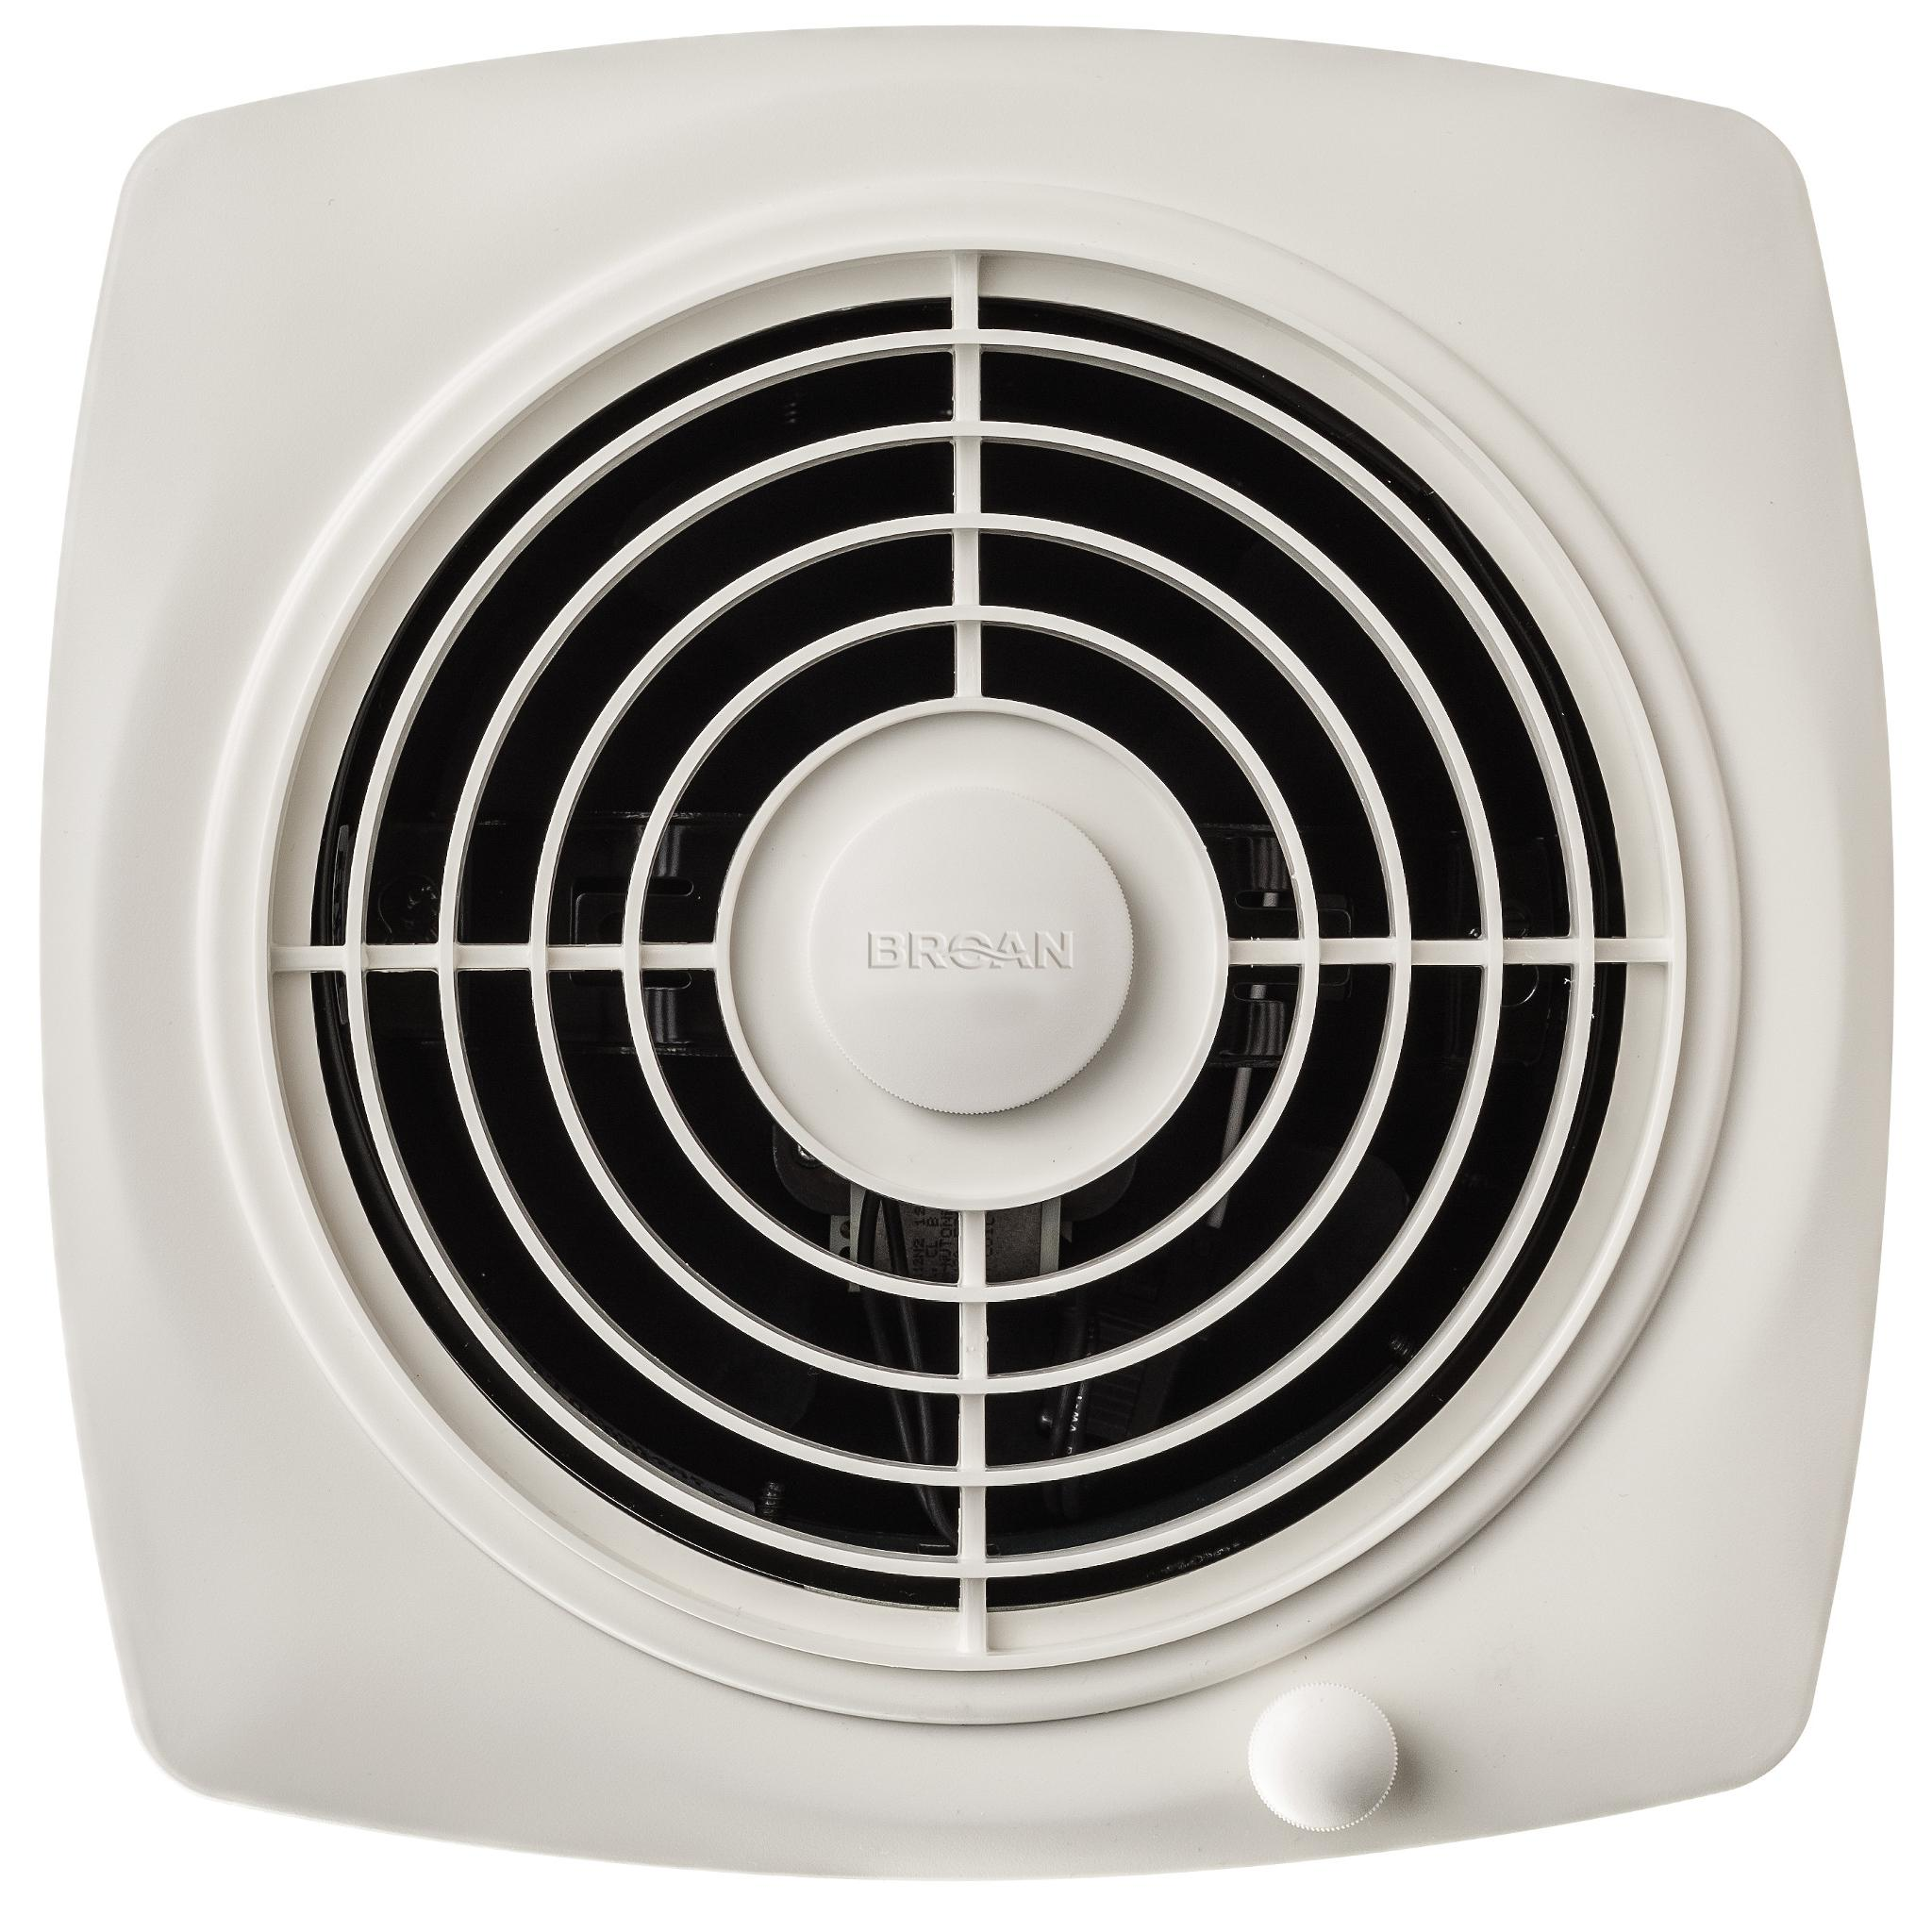 Thru Wall Fan : Broan s through wall fan with integral rotary switch